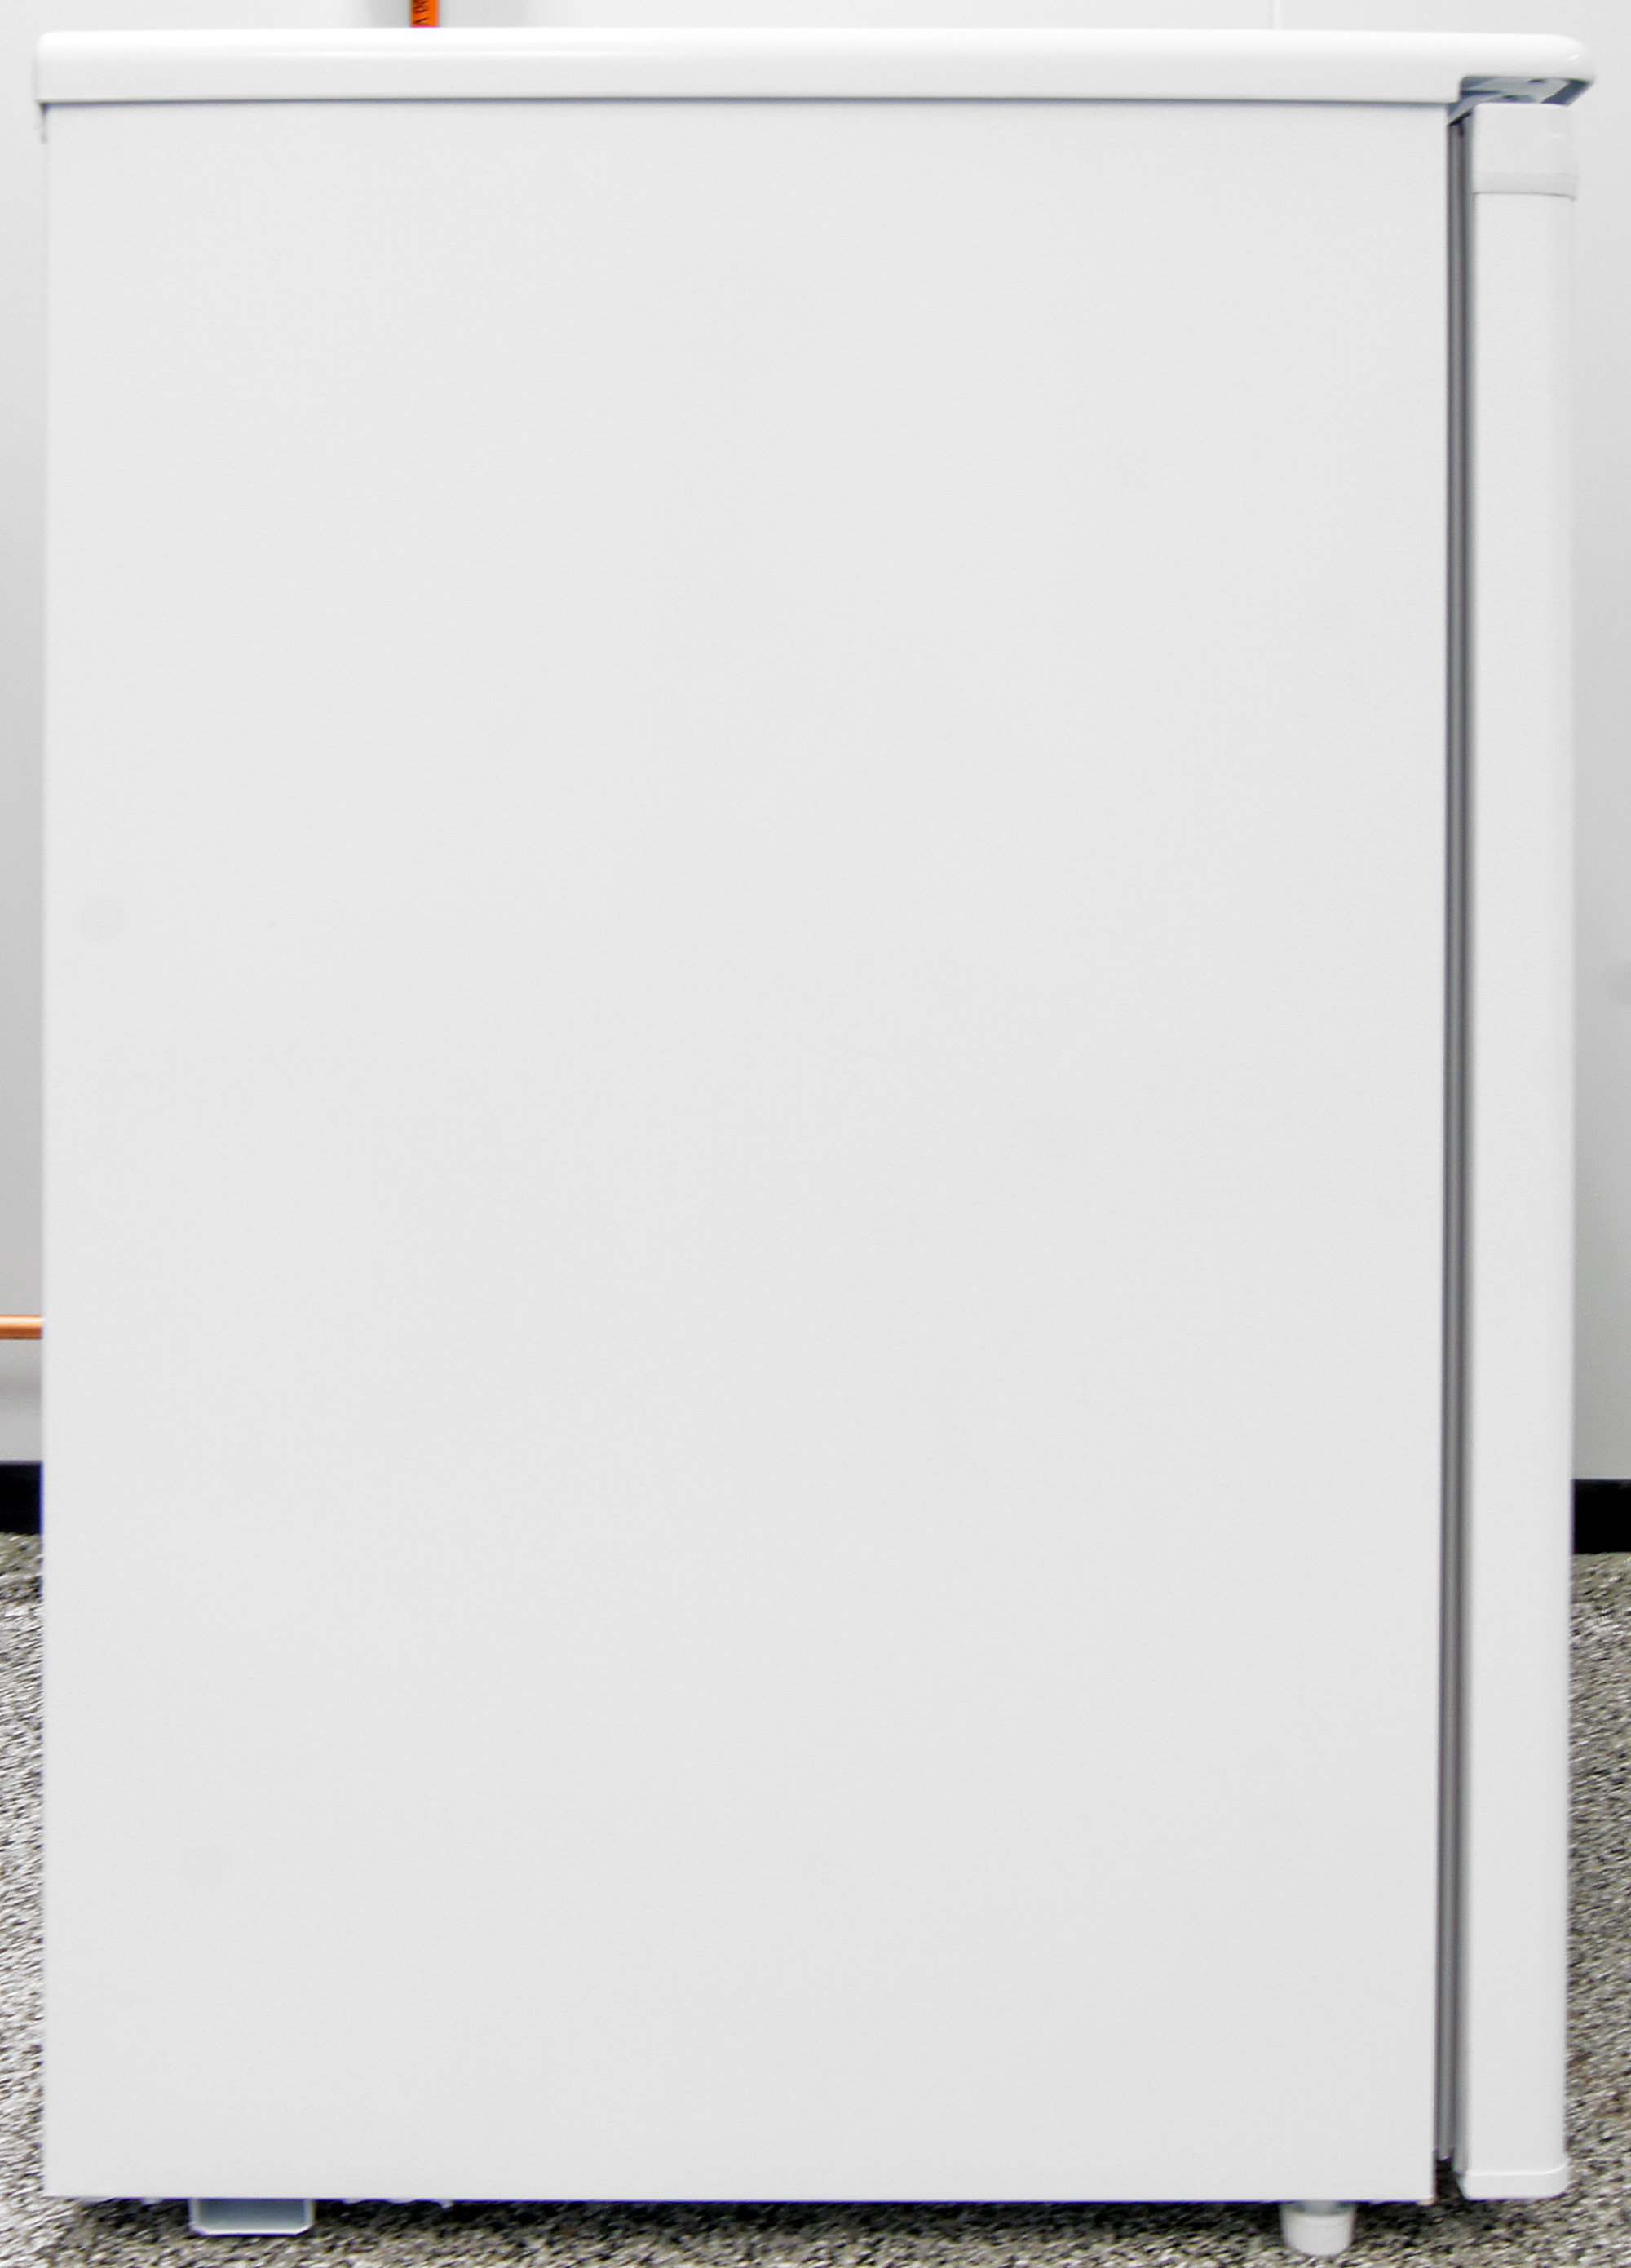 Haier 4.5 cu. ft. Compact Refrigerator with Freezer ...